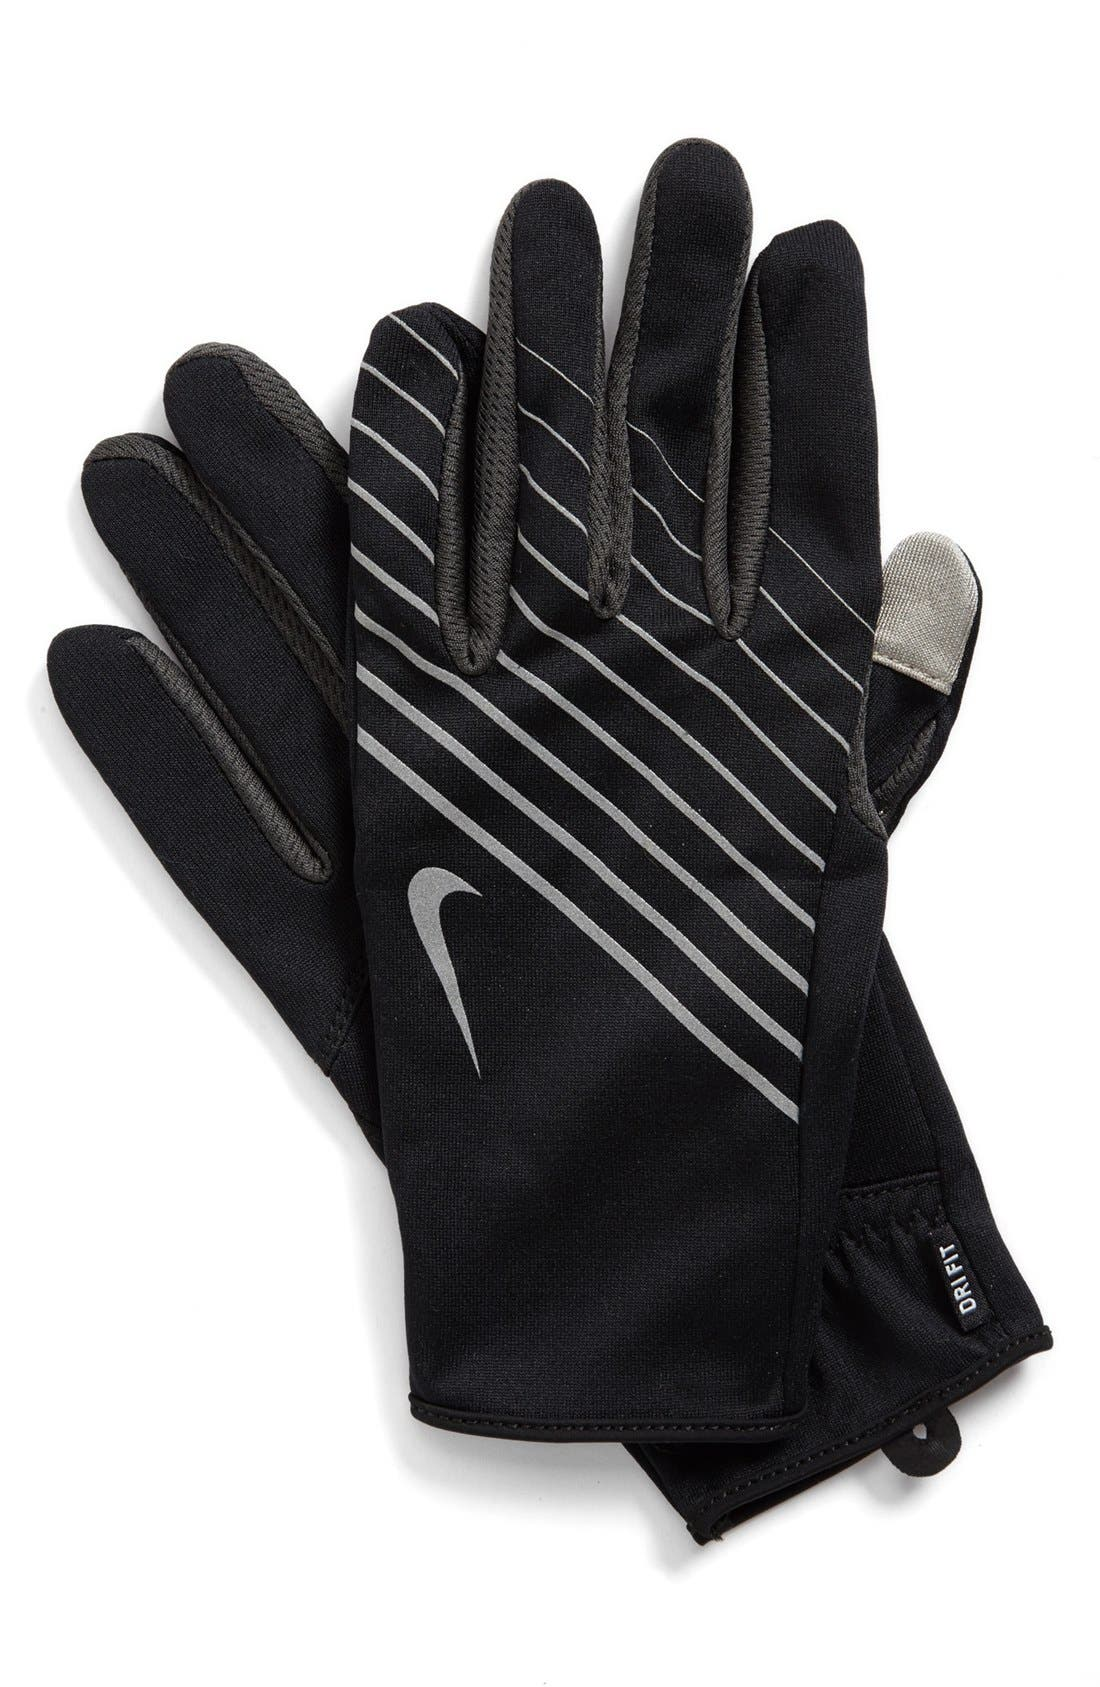 Alternate Image 1 Selected - Nike 'Tech' Dri-FIT Running Gloves